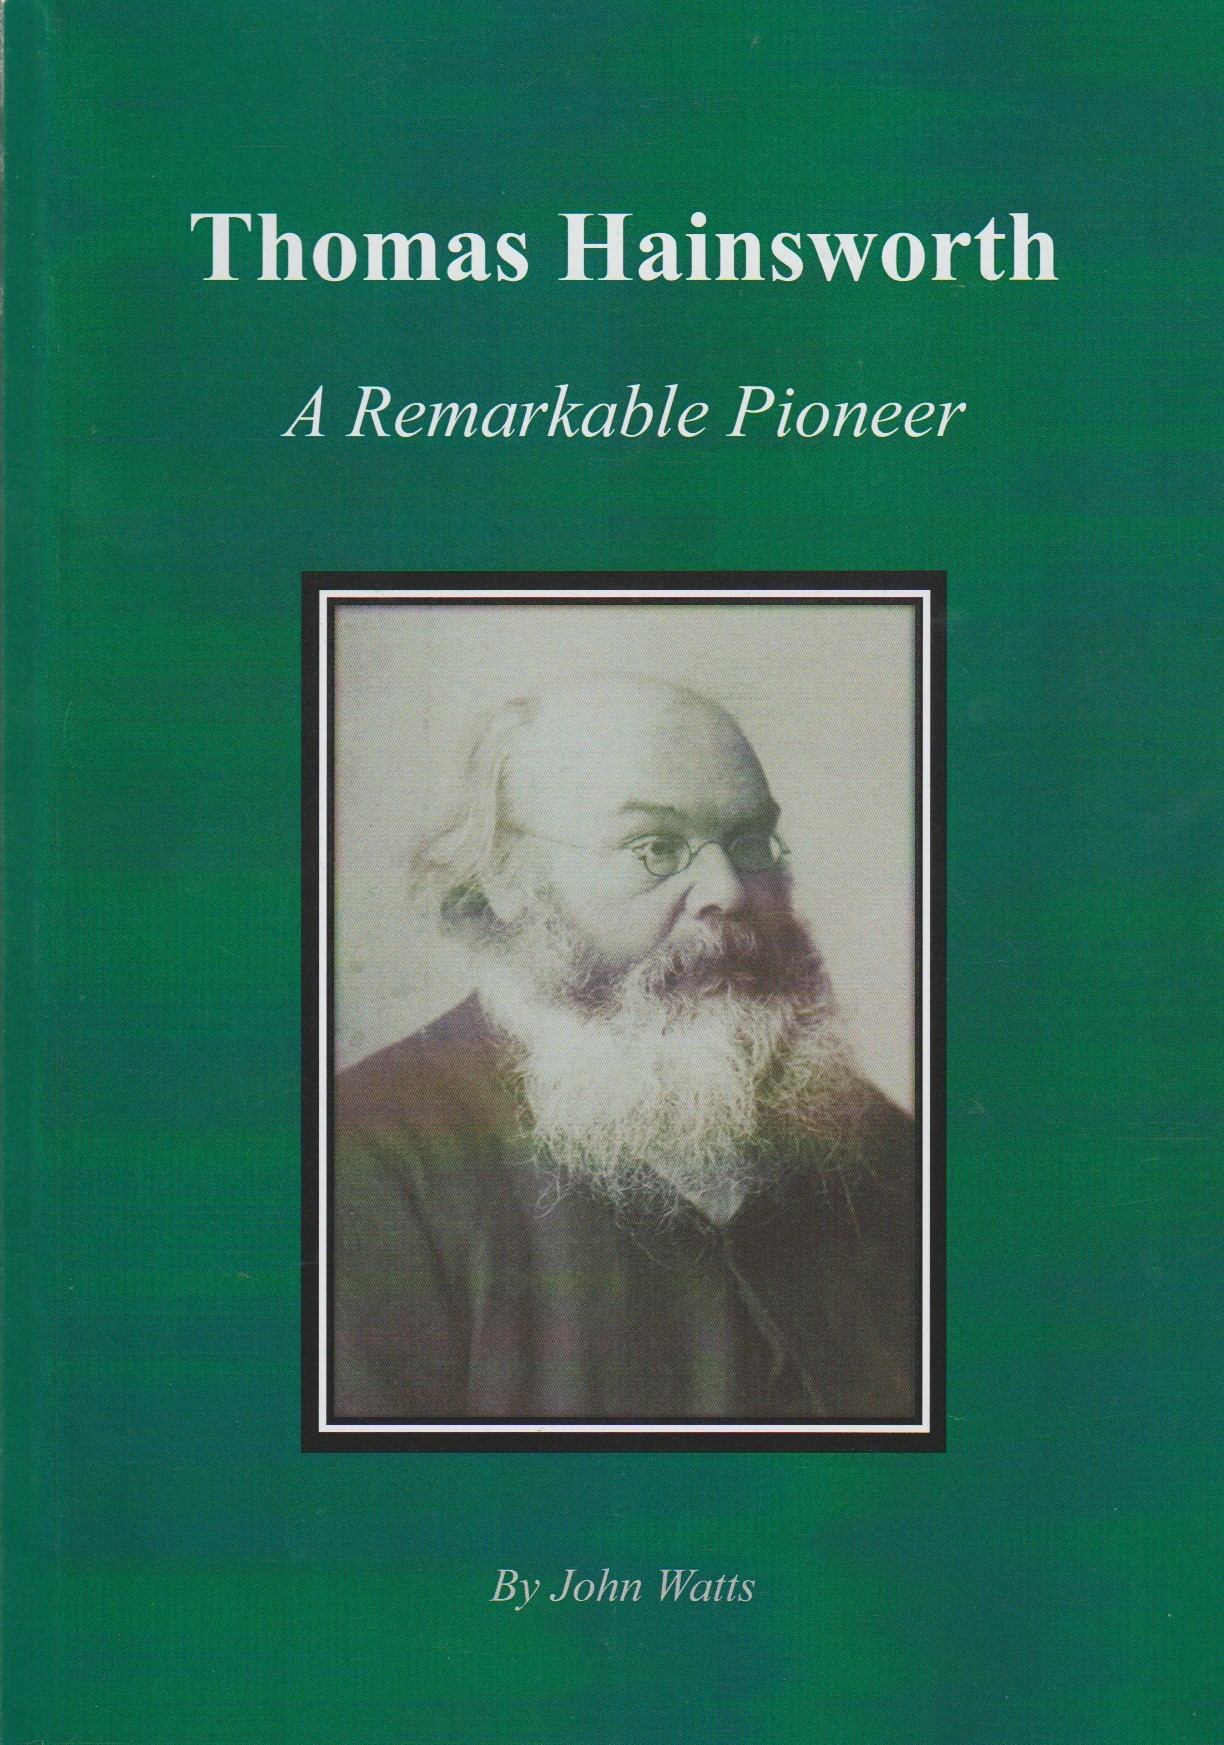 Thomas Hainsworth - a Remarkable Pioneer